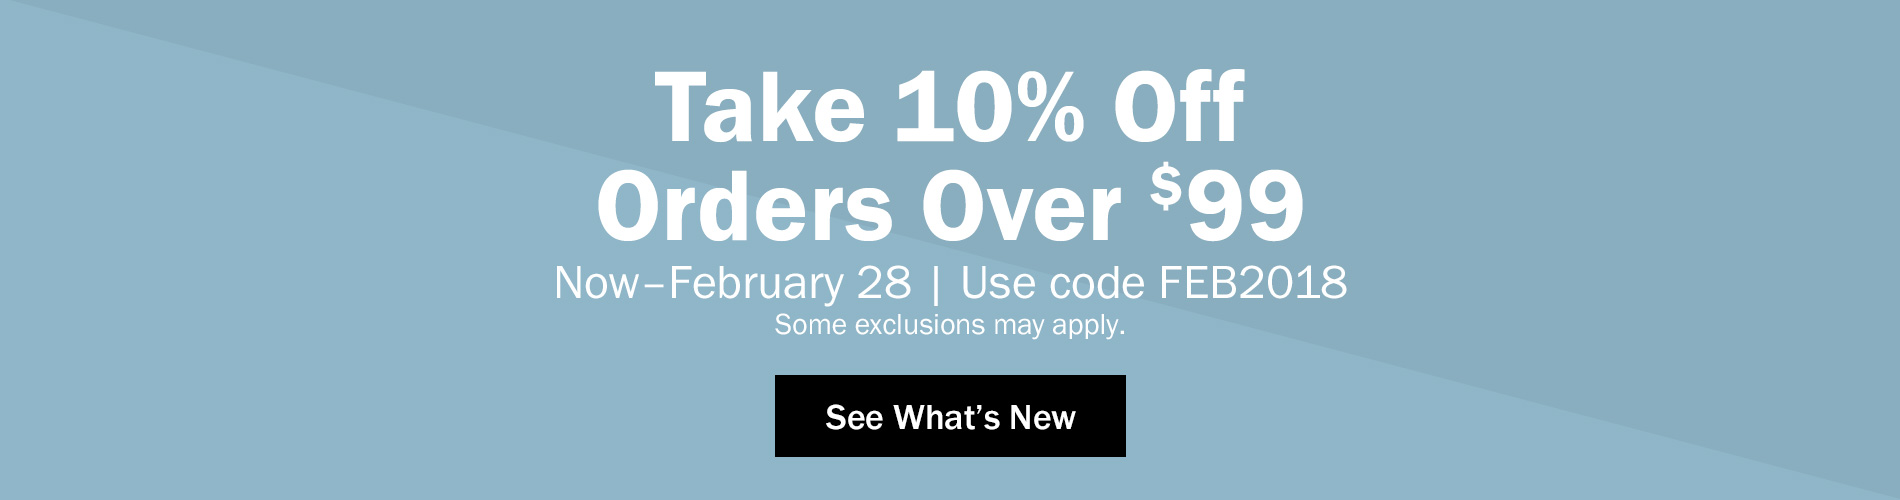 Take 10% Off Orders Over $99 Now through February 28. Use code FEB2018. Some exclusions may apply. See What's New >